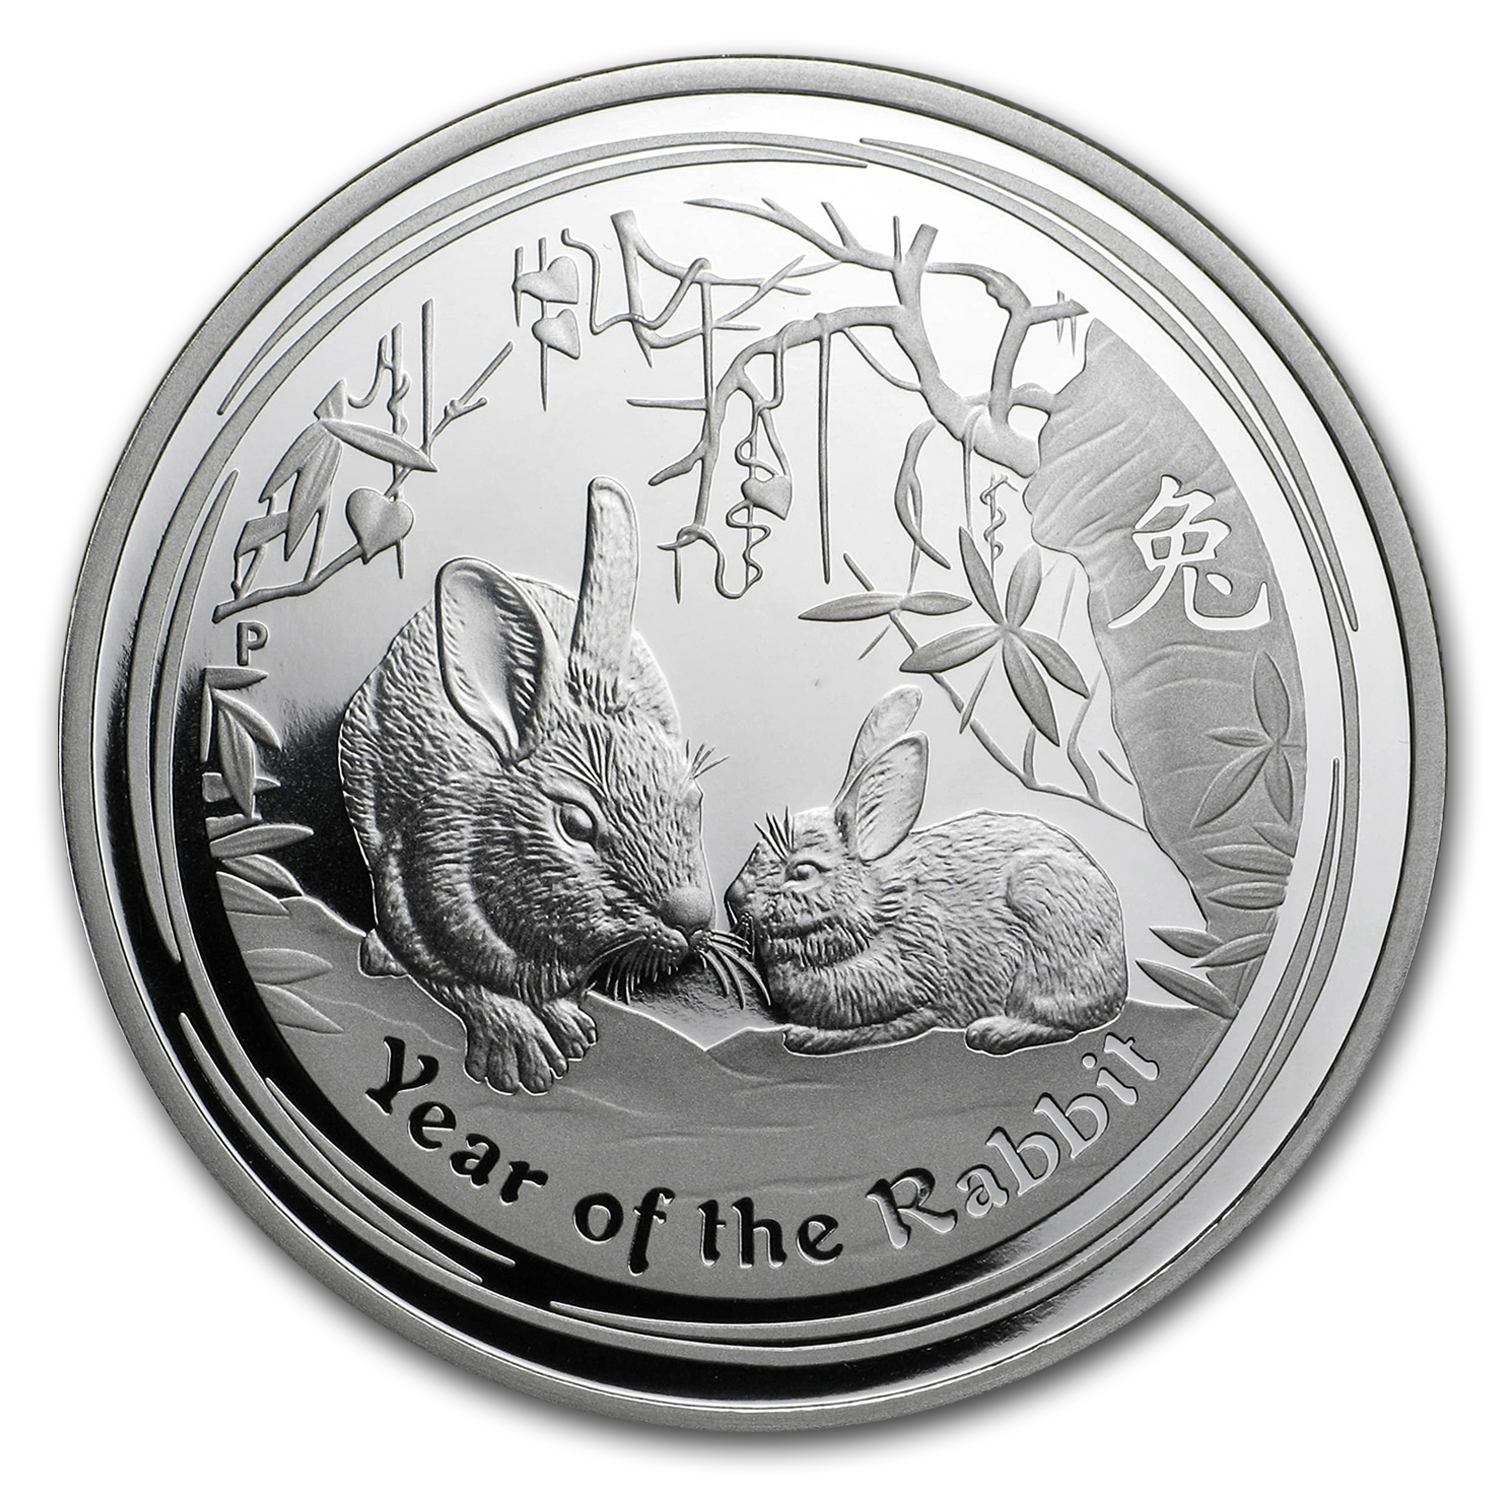 2011 Australia 1 oz Silver Year of the Rabbit Proof